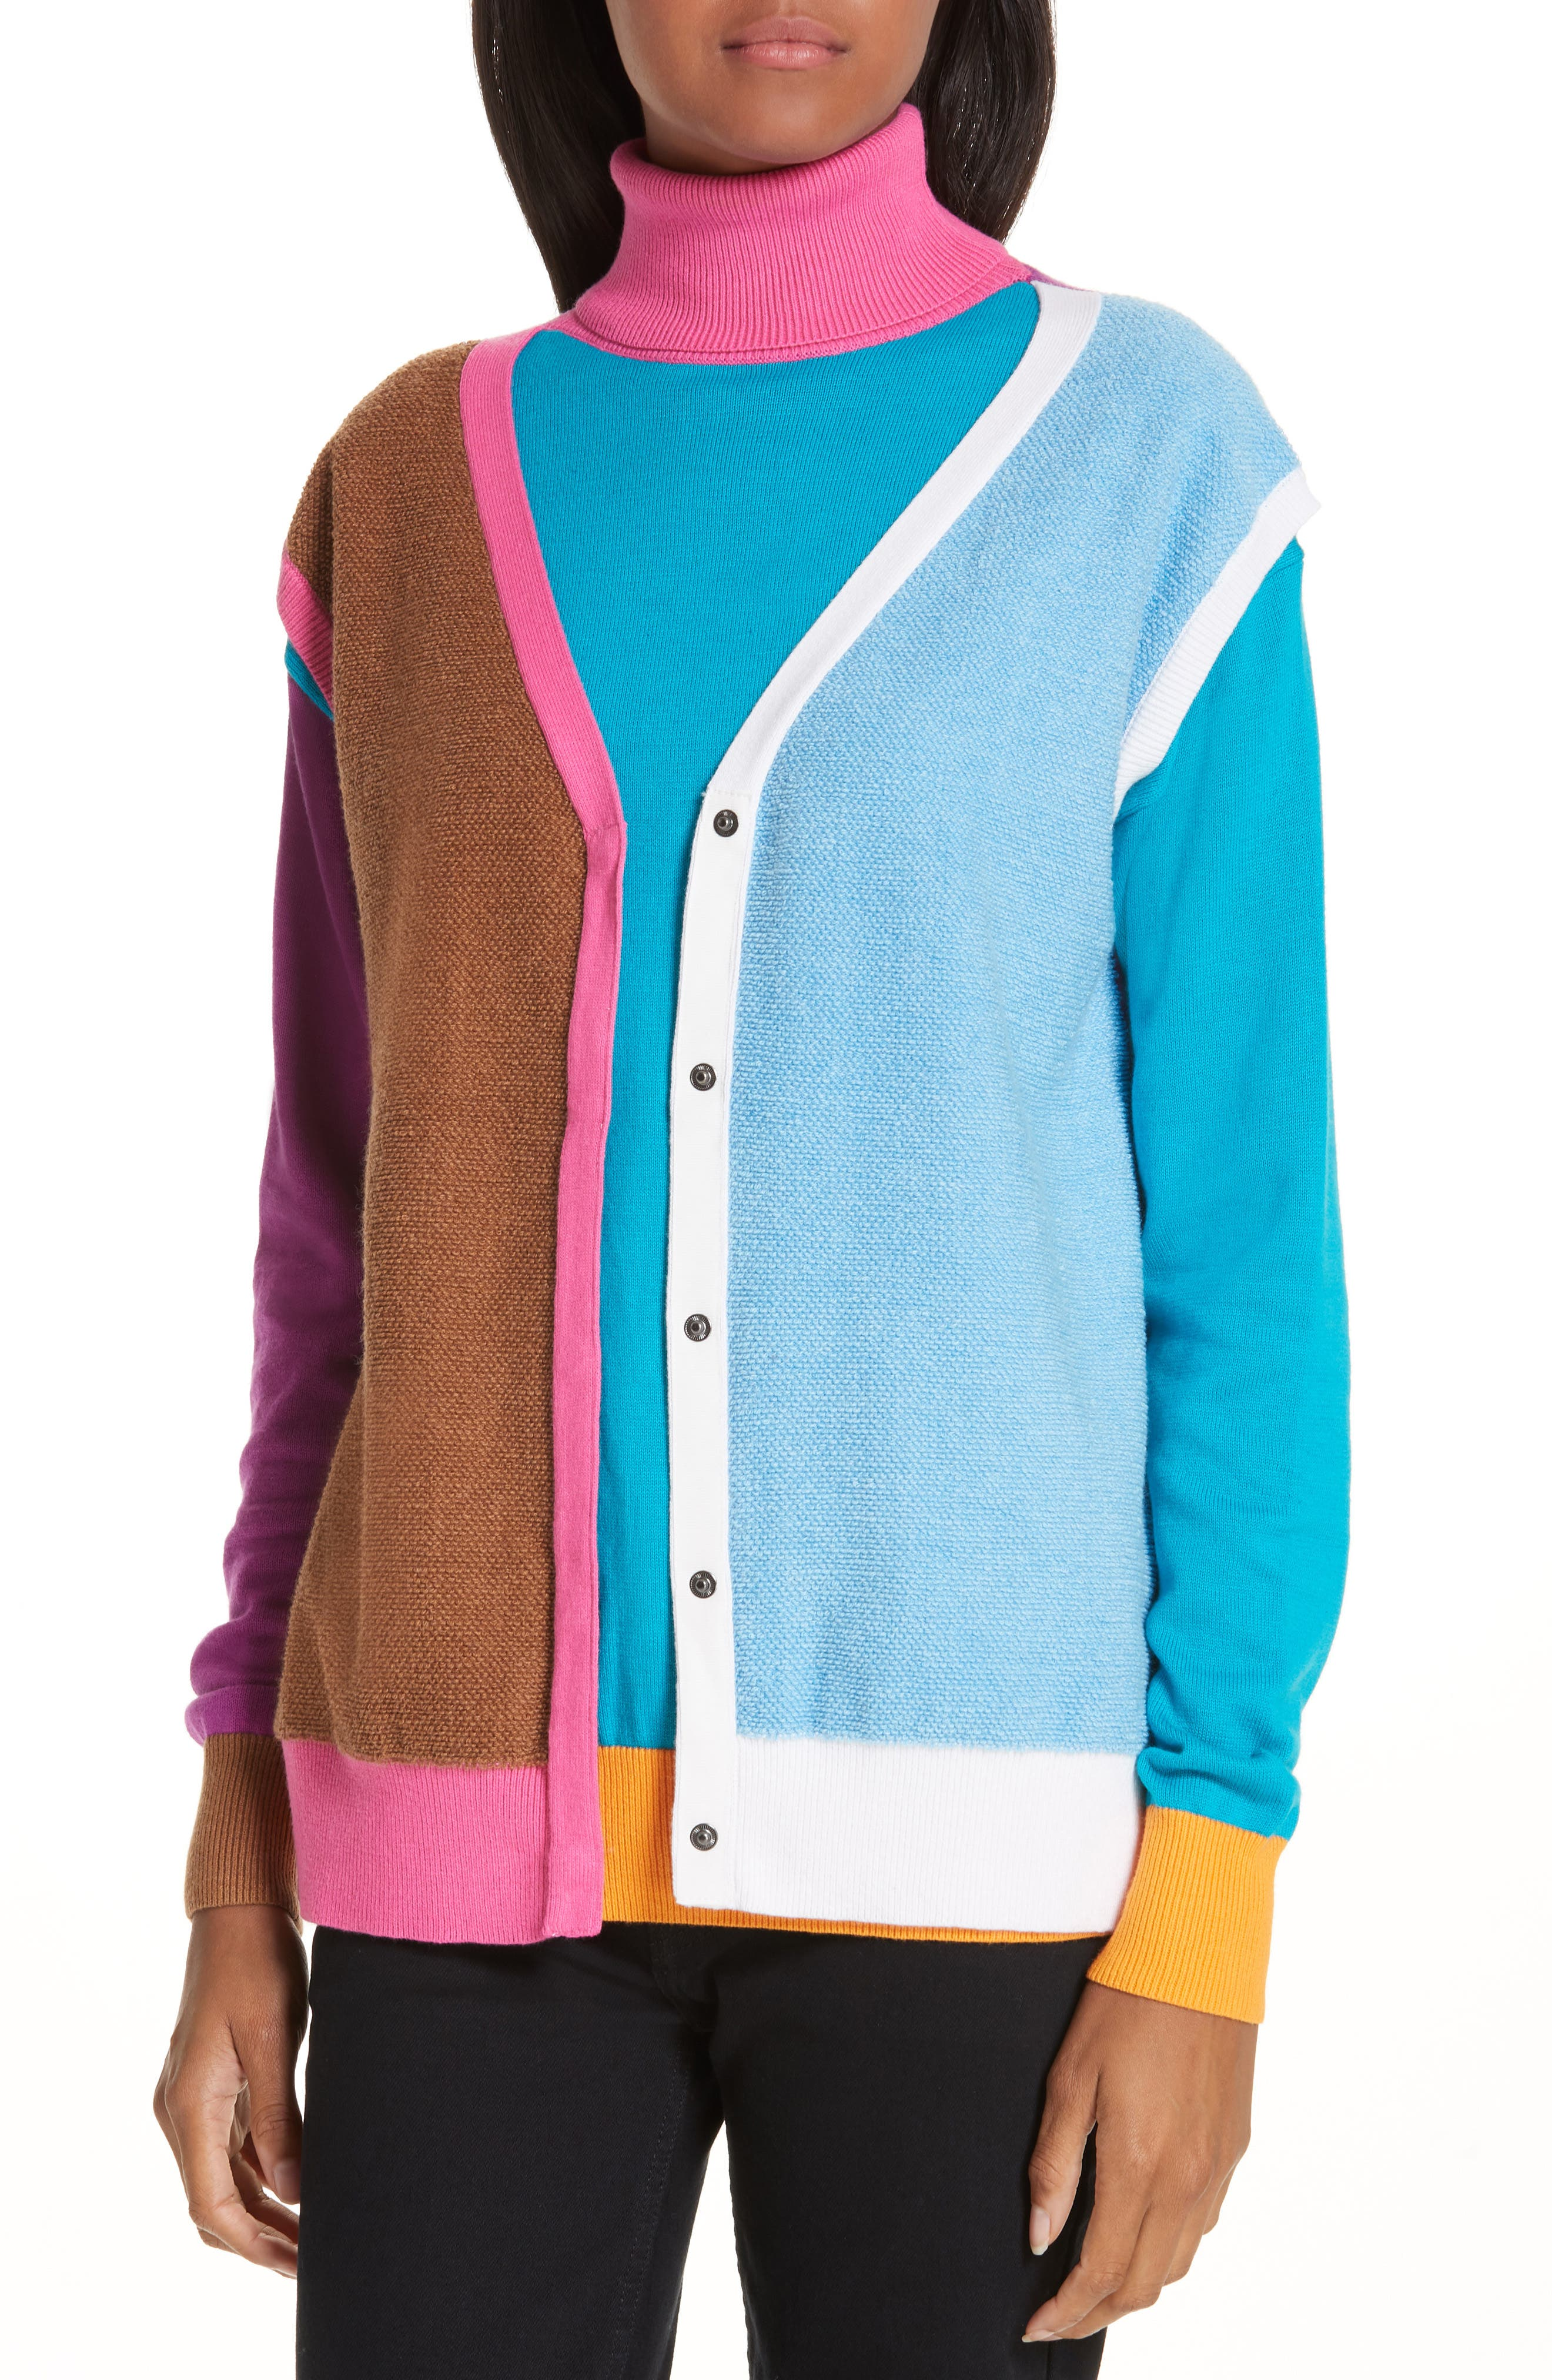 Layered Cotton & Cashmere Sweater,                             Alternate thumbnail 4, color,                             PINK/BLUE/SAND COMBO